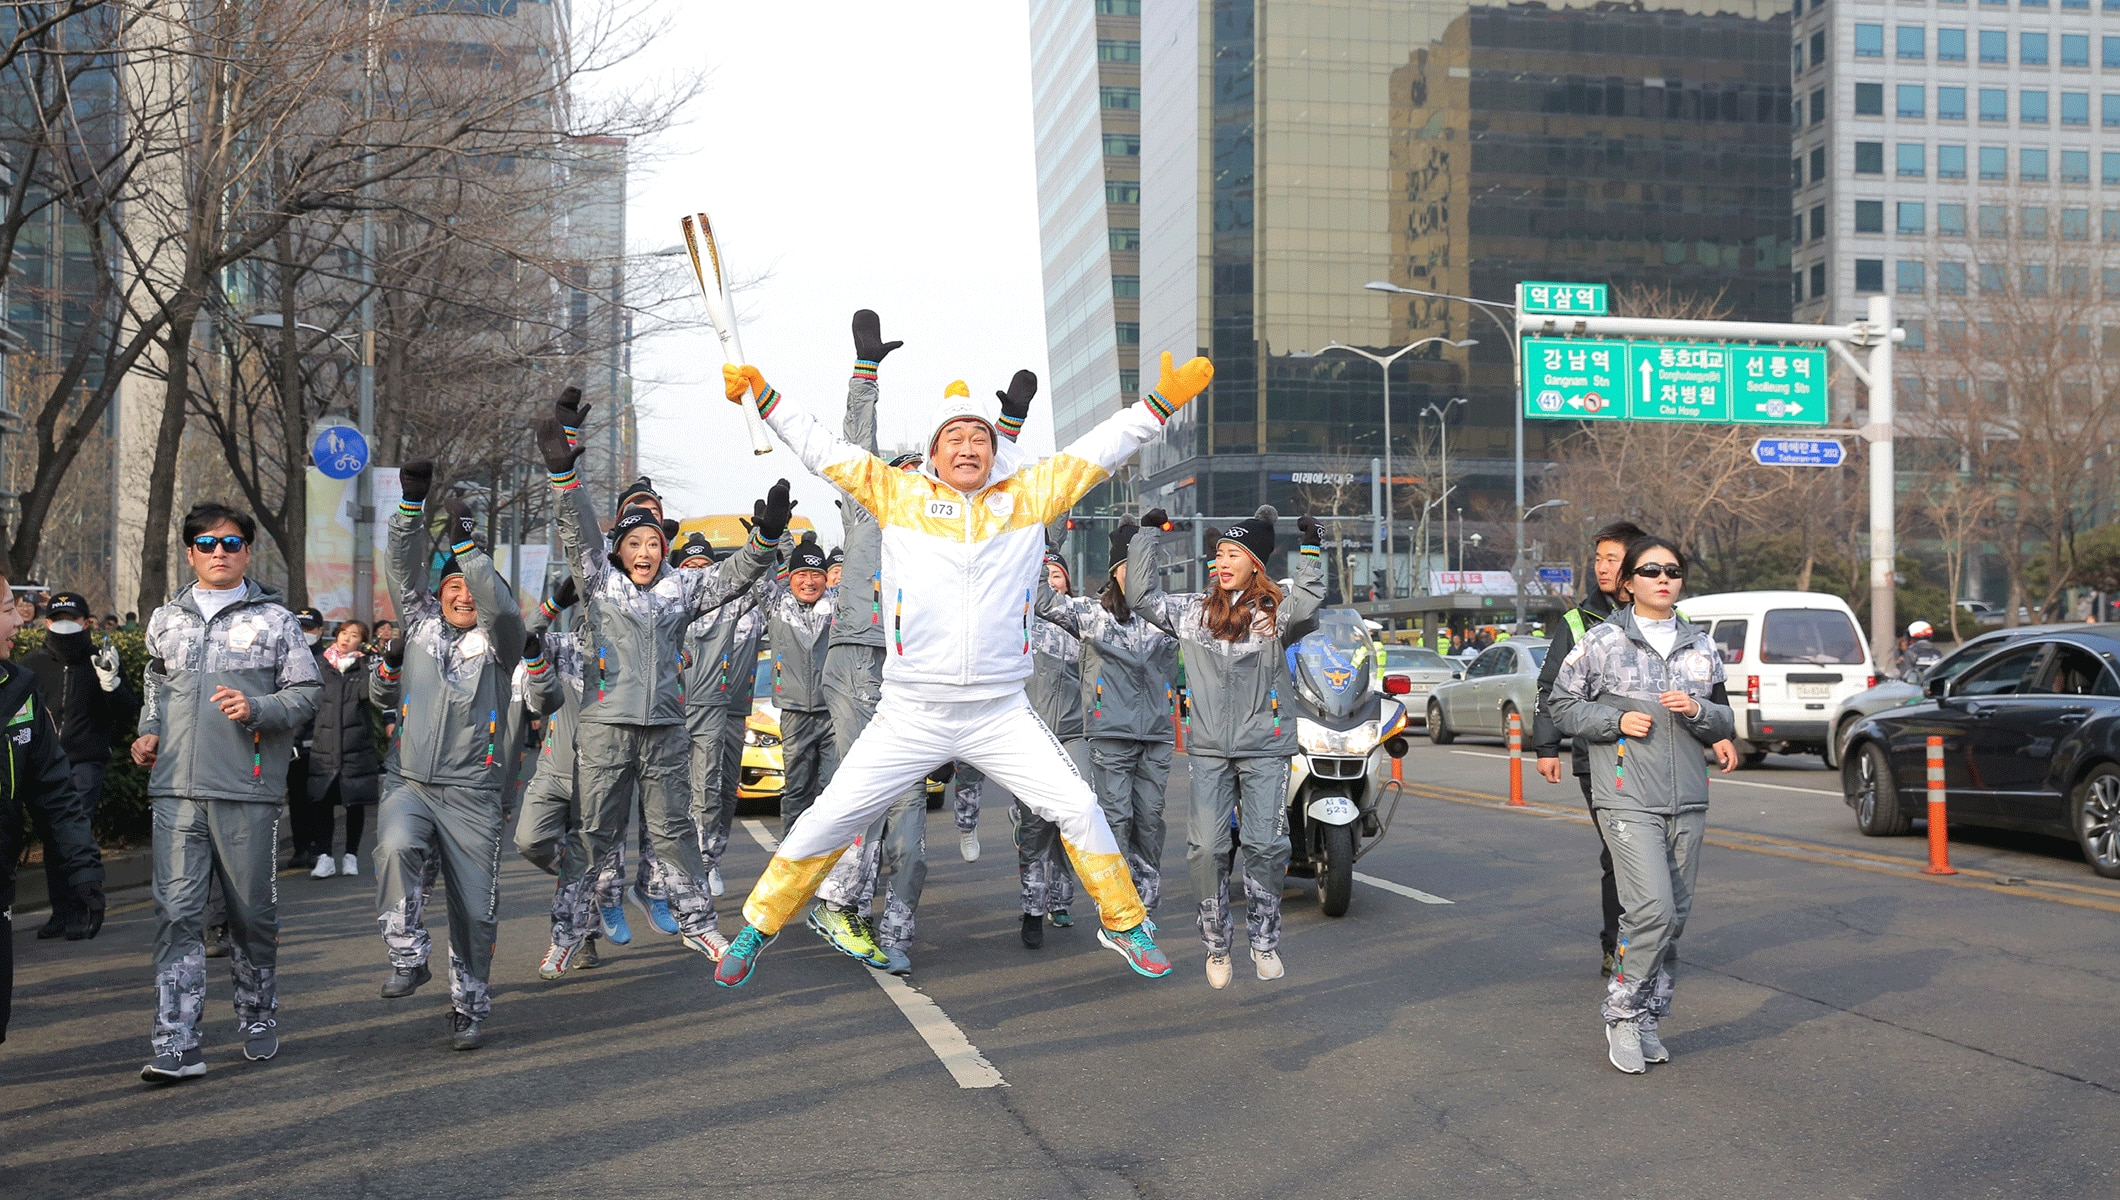 Olympic Torch Relay leaves Seoul and clocks up 80th day